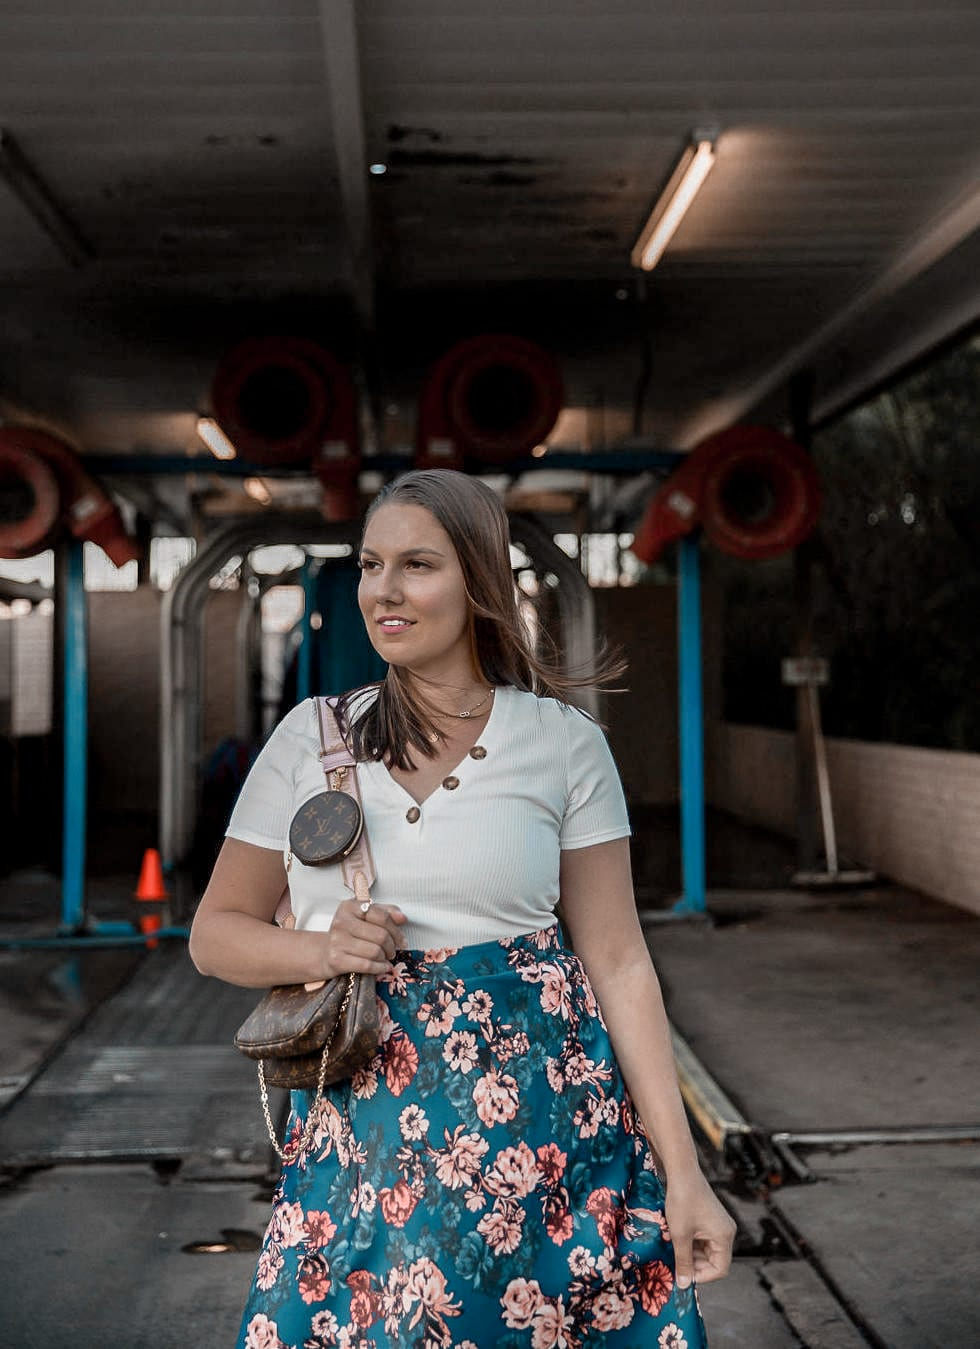 Adaleta Avdic is standing in front of a car wash, while holding her floral maxi skirt in light pink wedges.